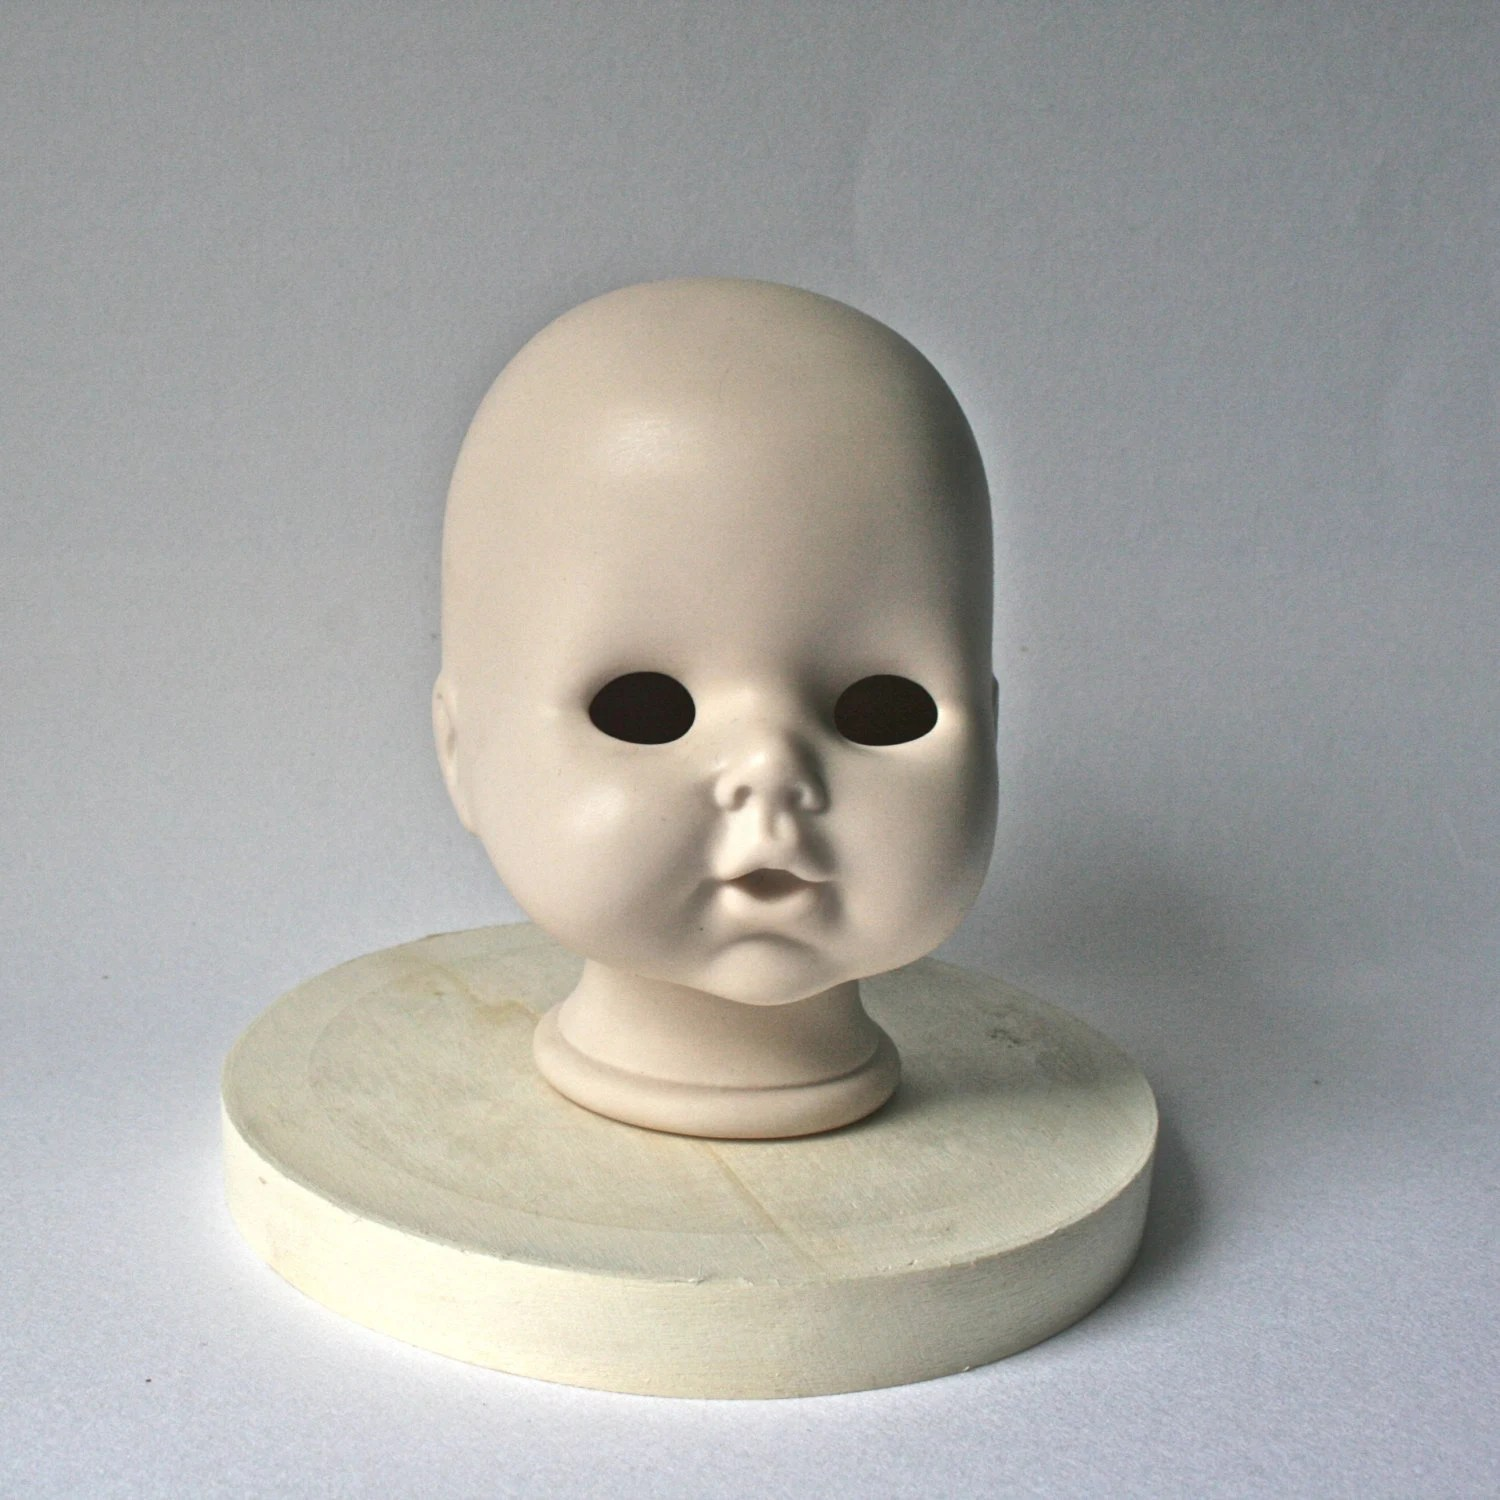 Vintage Porcelain Bald Doll Head with Sweet Expression for